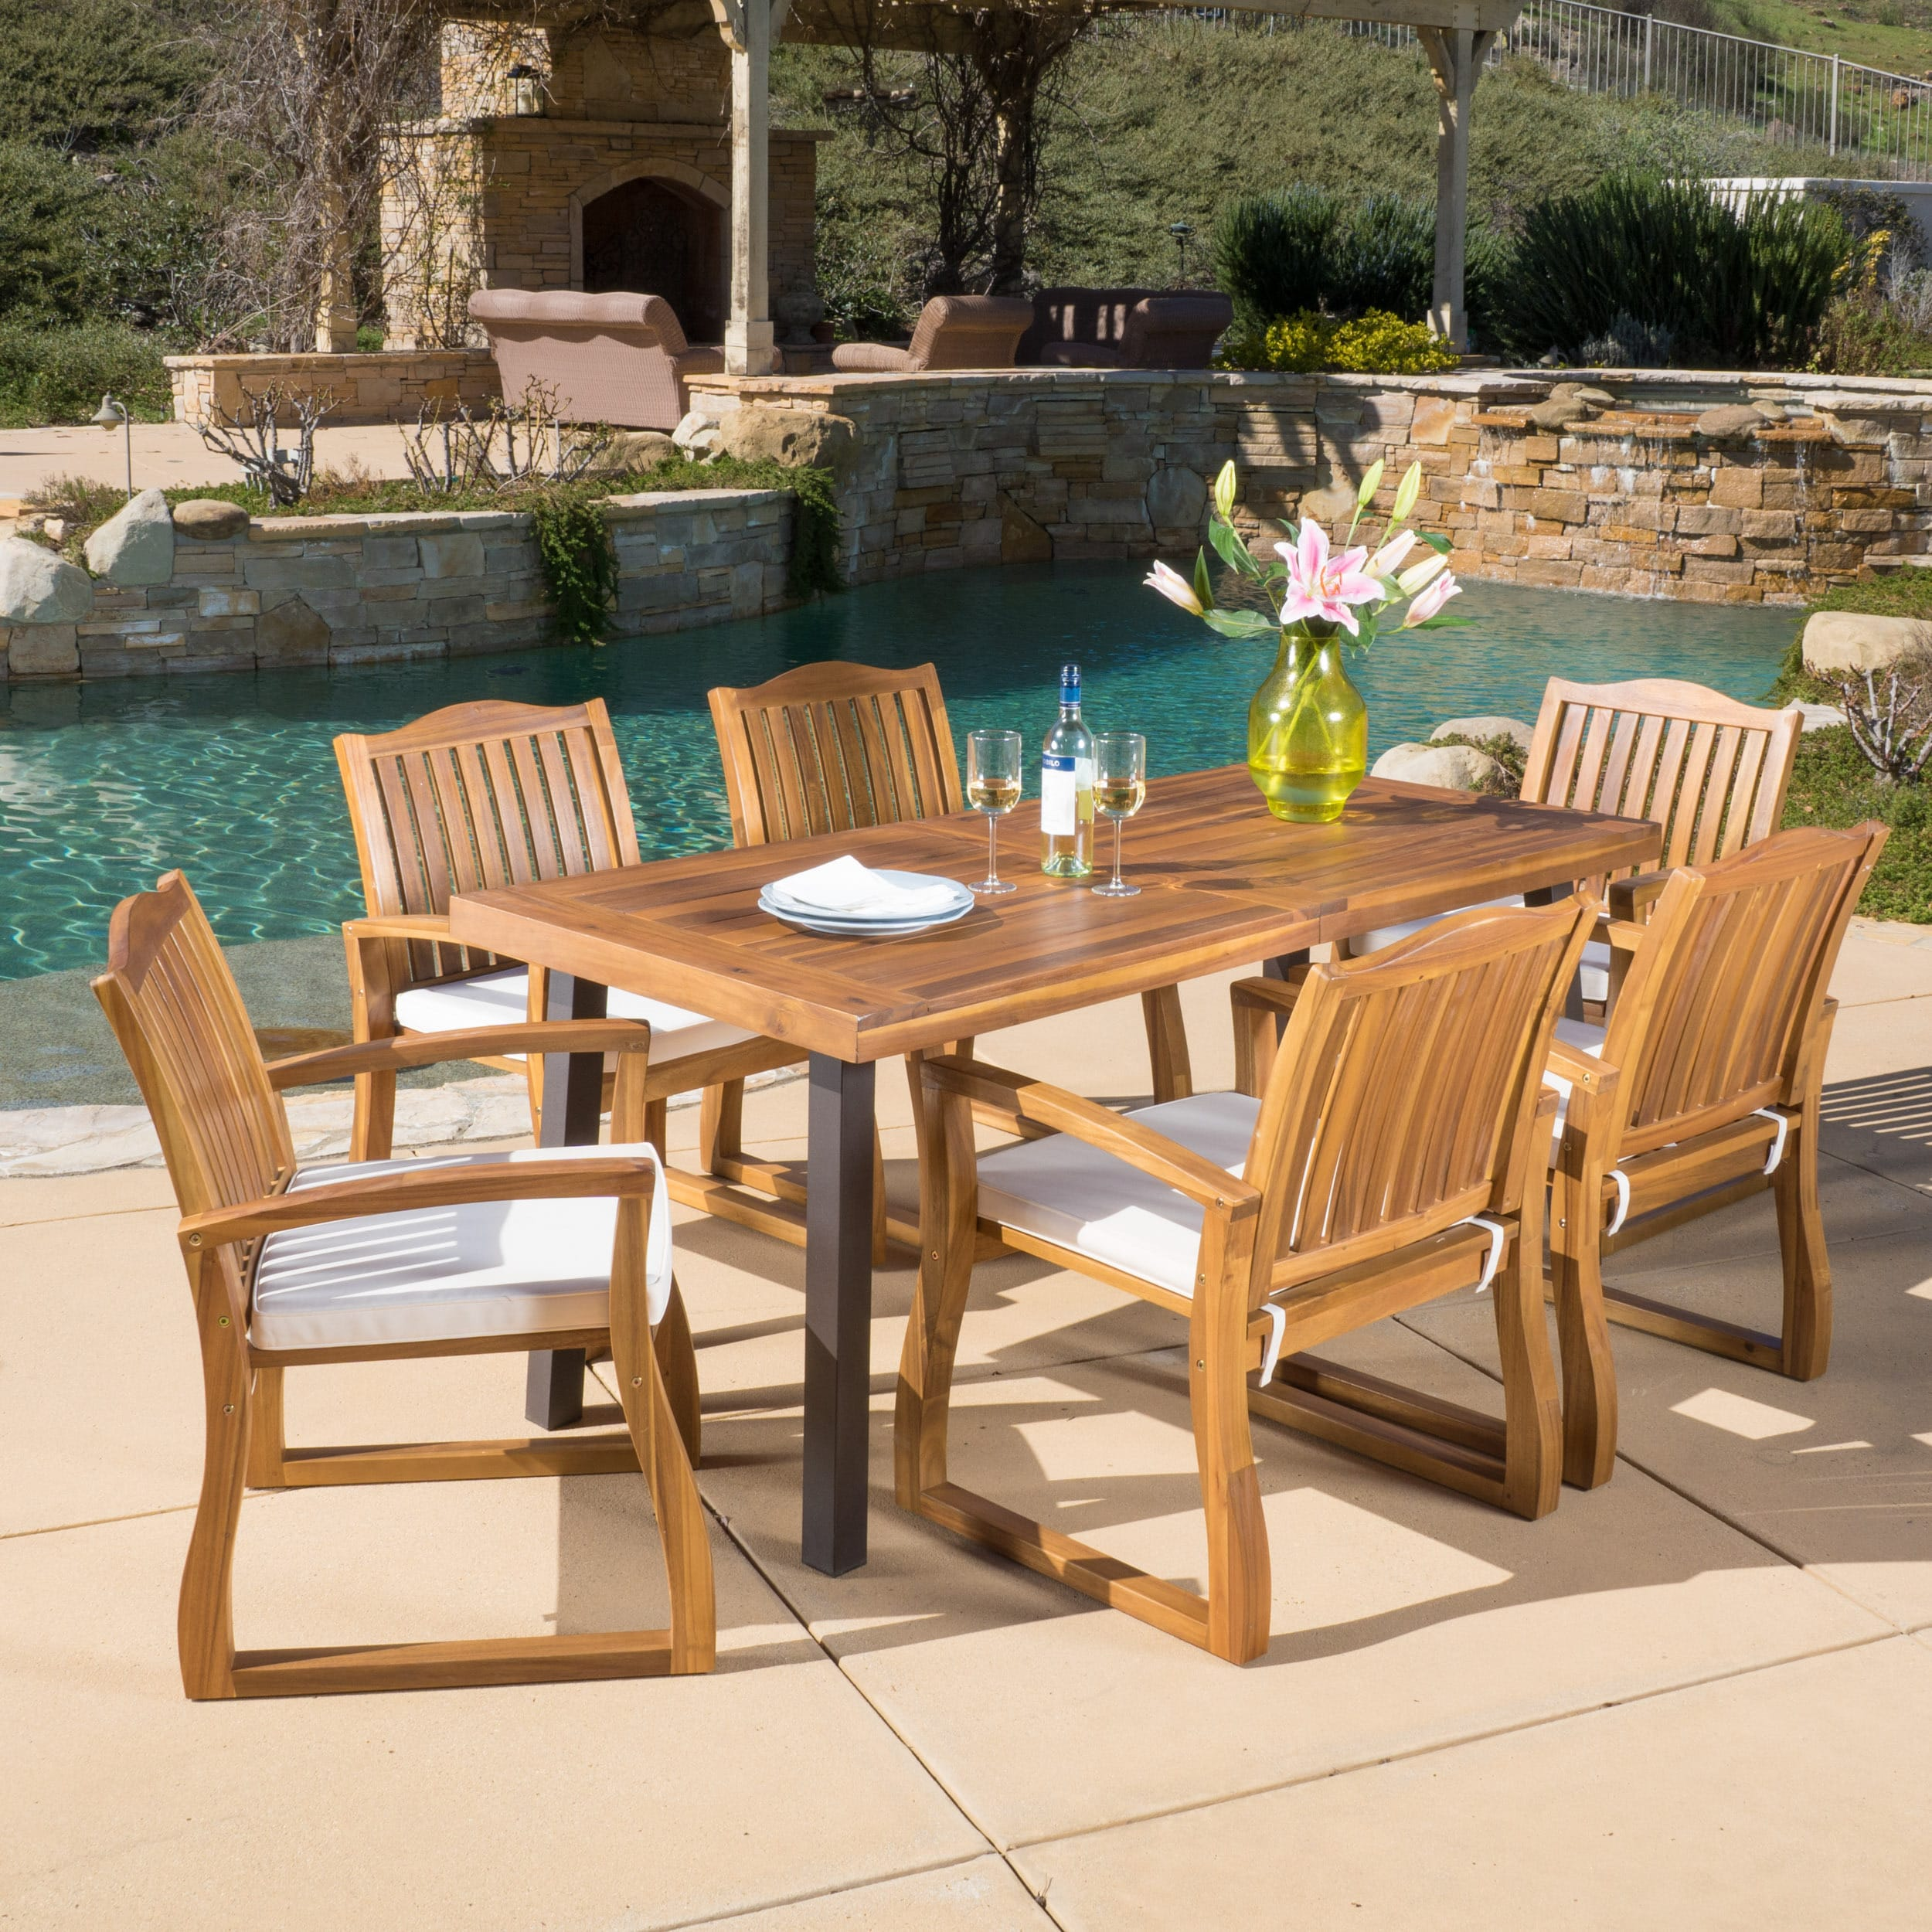 Shop Della Outdoor 7 Piece Acacia Wood Dining Set With Cushions By  Christopher Knight Home   Free Shipping Today   Overstock.com   11373483